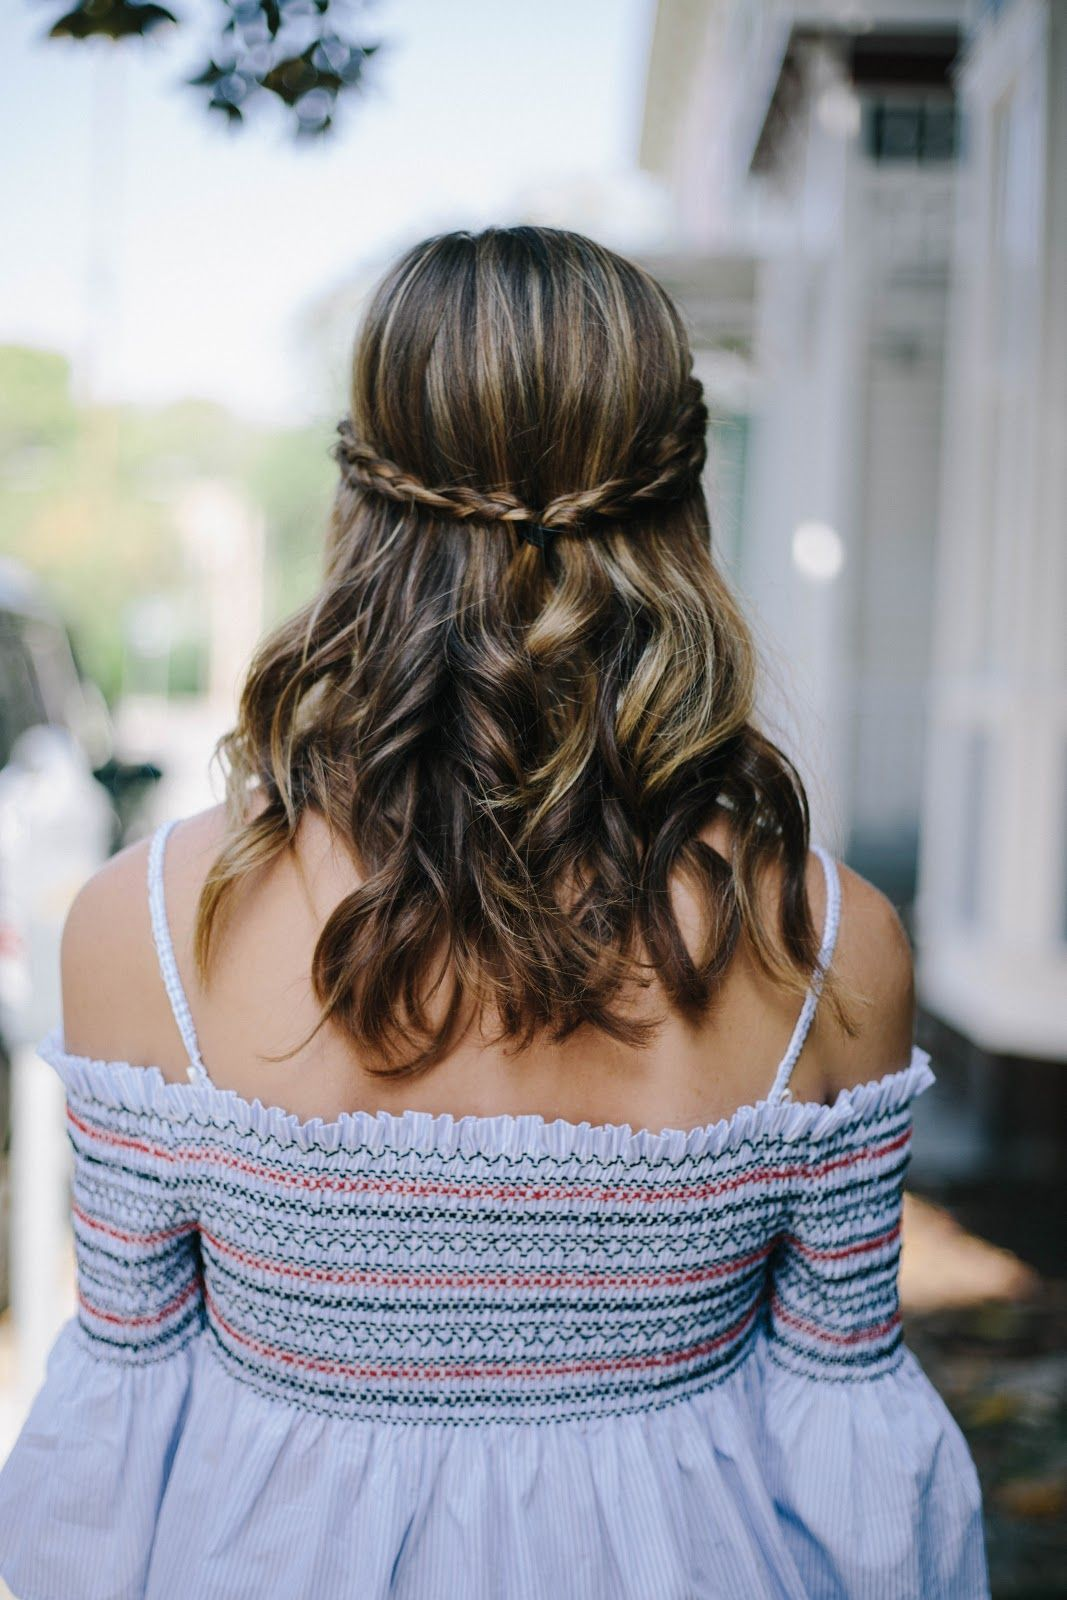 Super Easy Hair Style Two Braids Pulled Back With Loose Curls Hair Styles Loose Curls Hairstyles Loose Curls